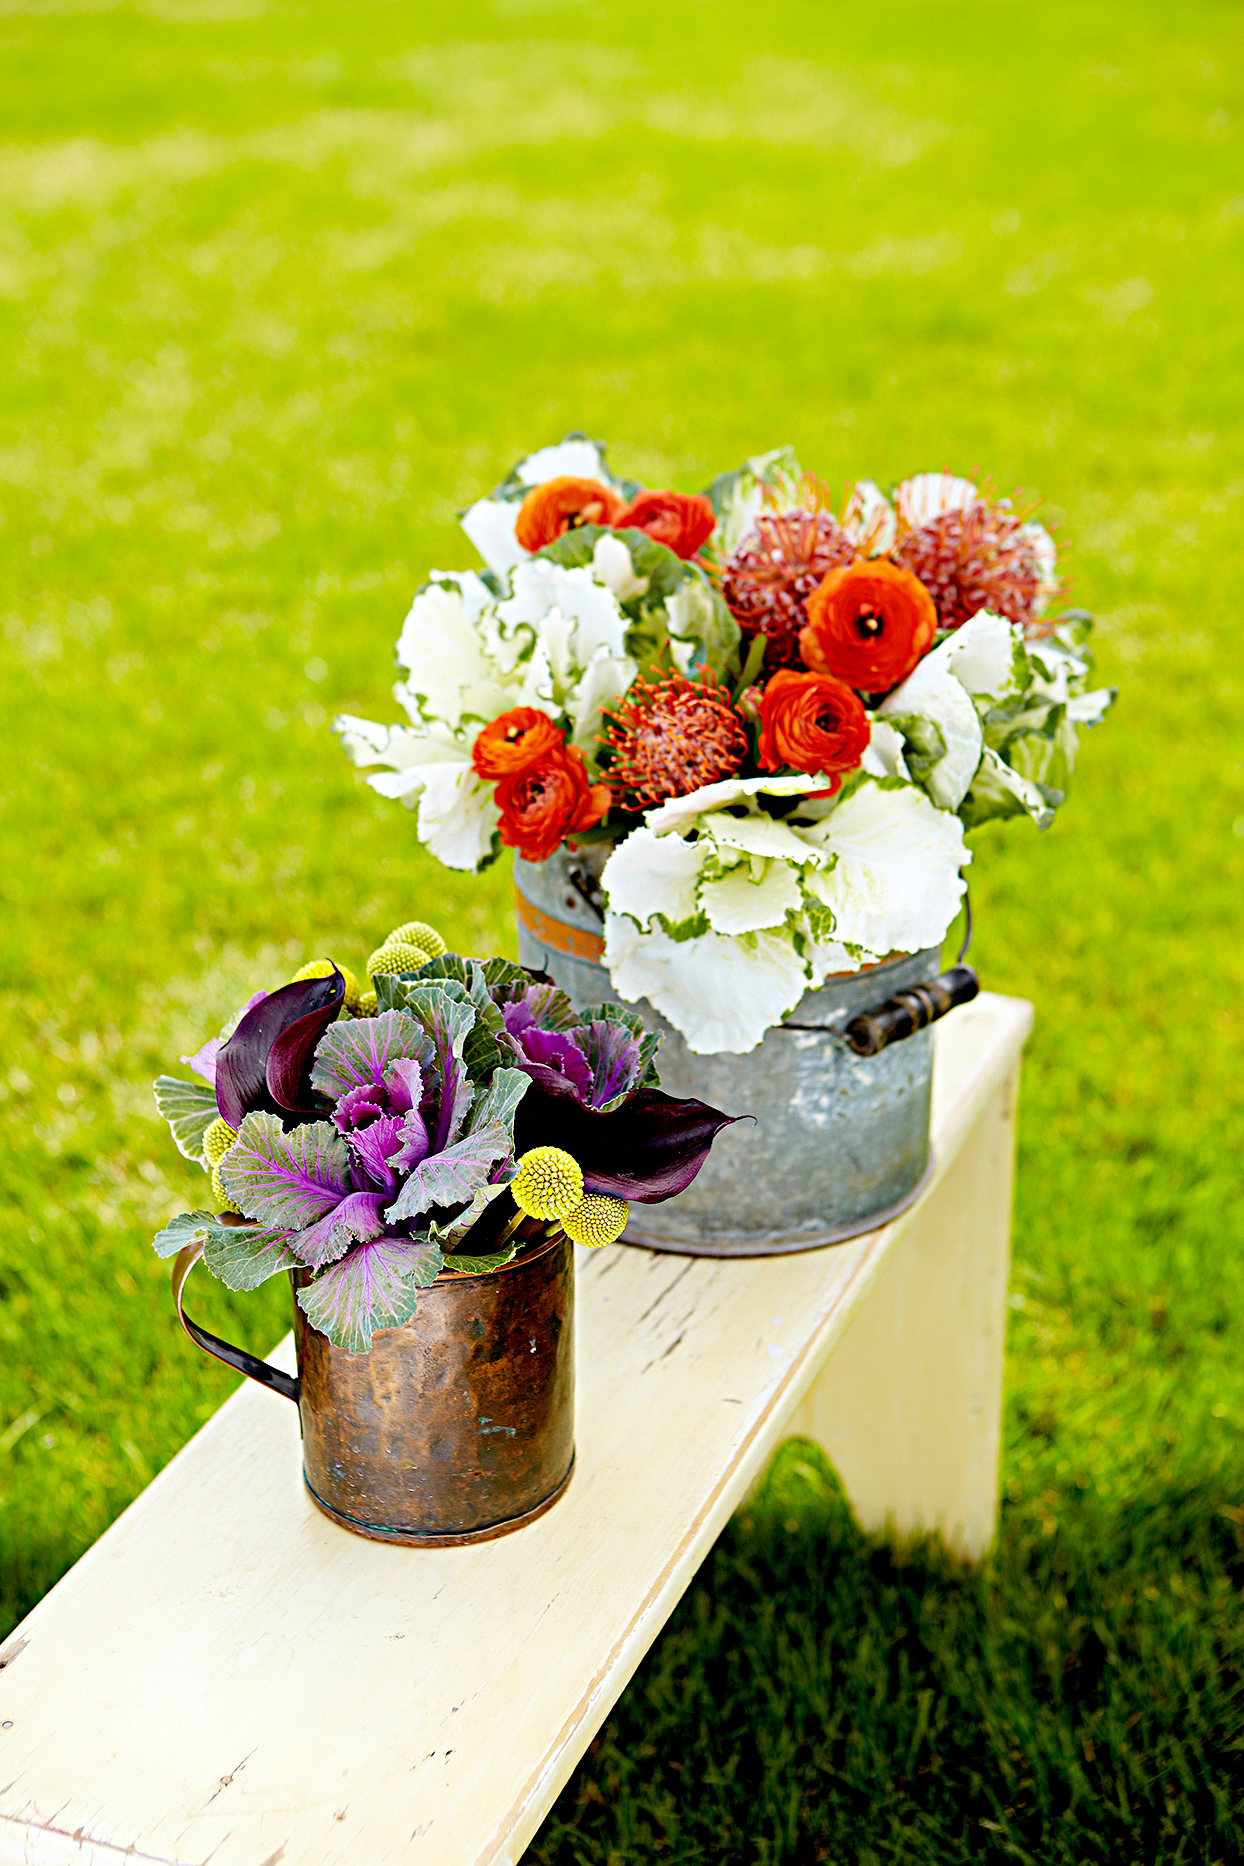 Two metal buckets with flowers